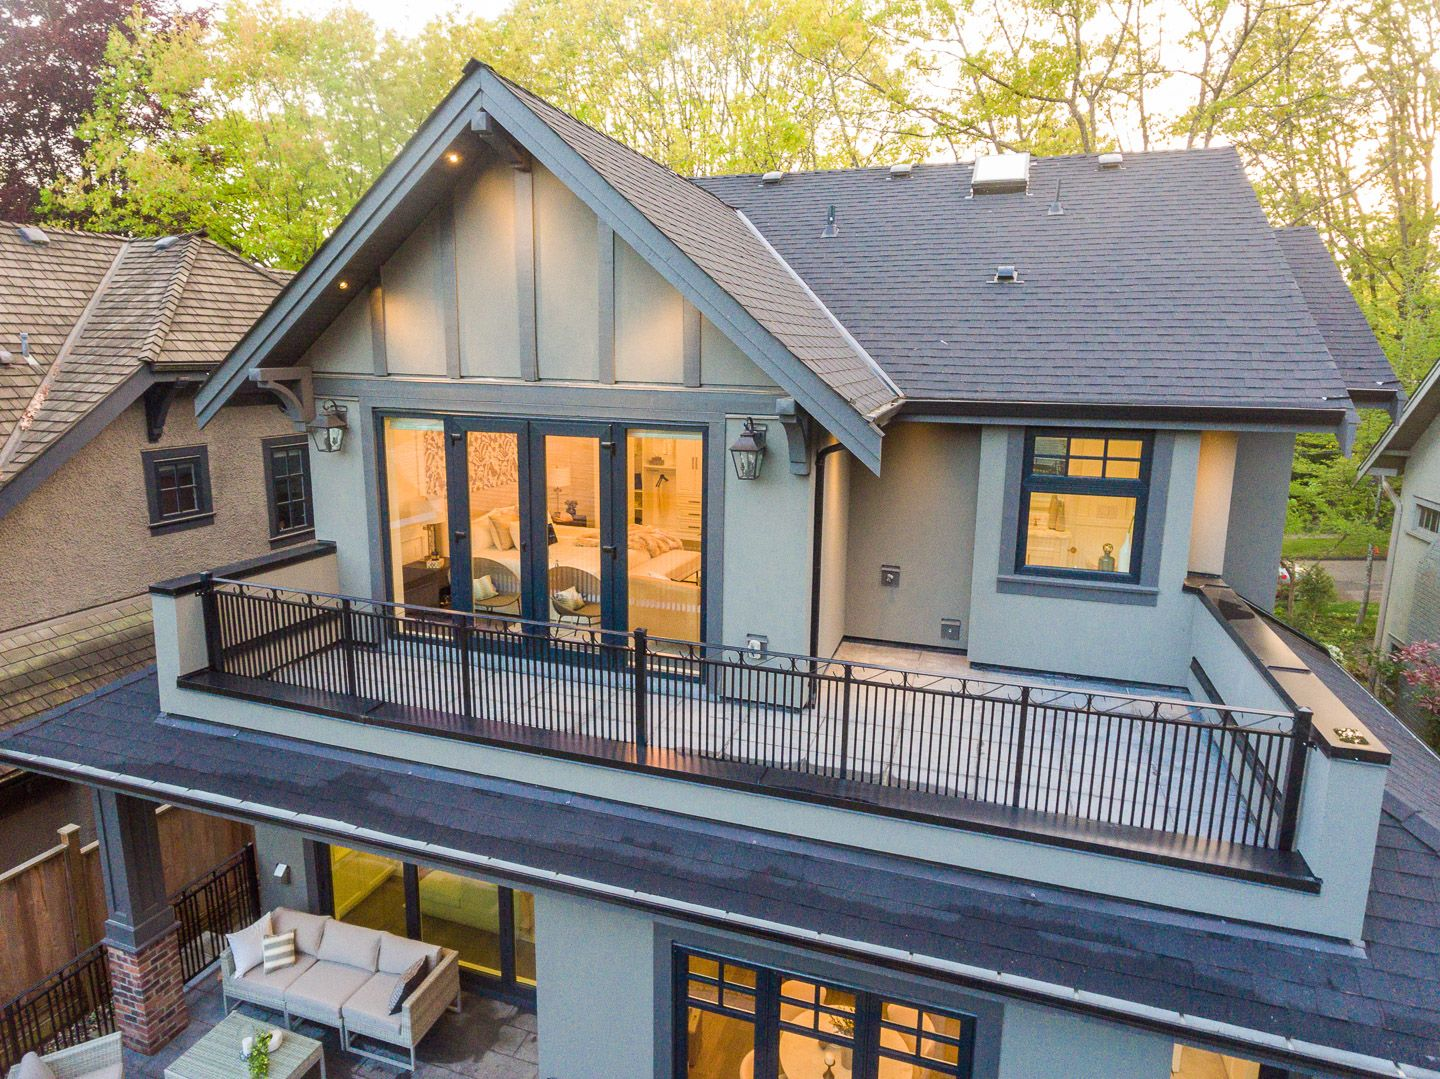 Photo 4: Photos: 5756 ALMA STREET in VANCOUVER: Southlands House for sale (Vancouver West)  : MLS®# R2588229